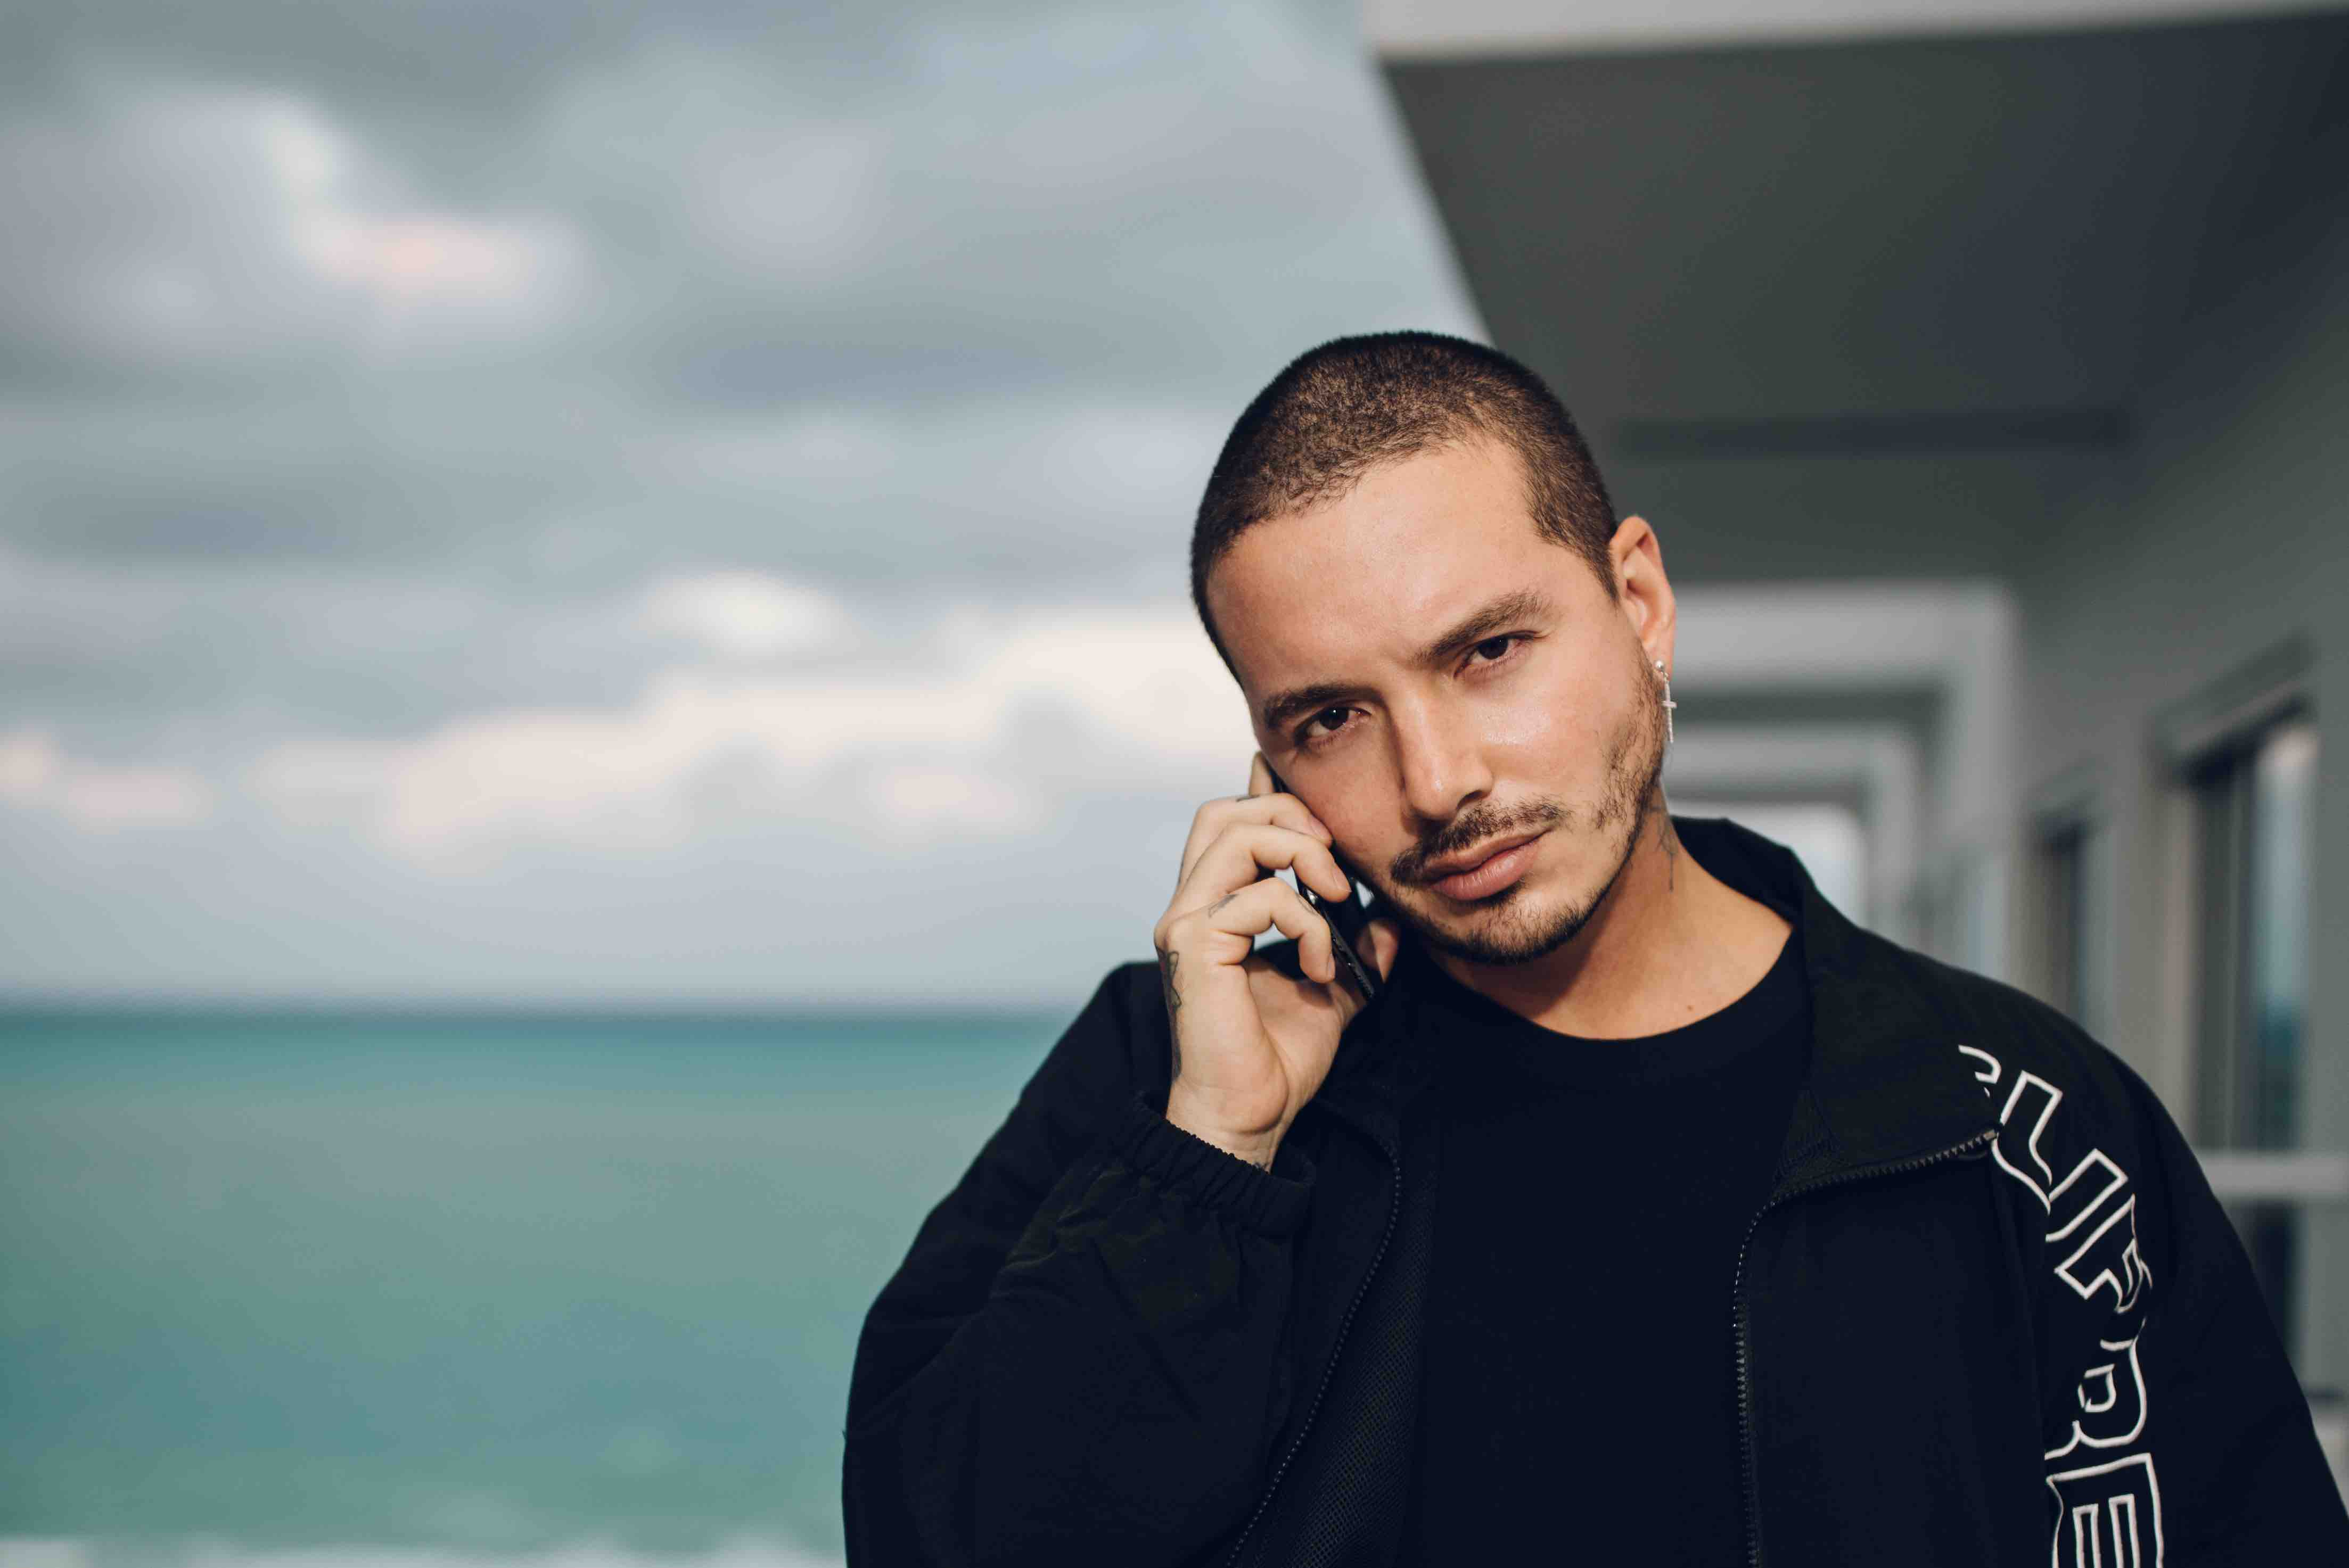 J Balvin Shares How Professional Help Got Him Through Months of 'Hell' with Depression